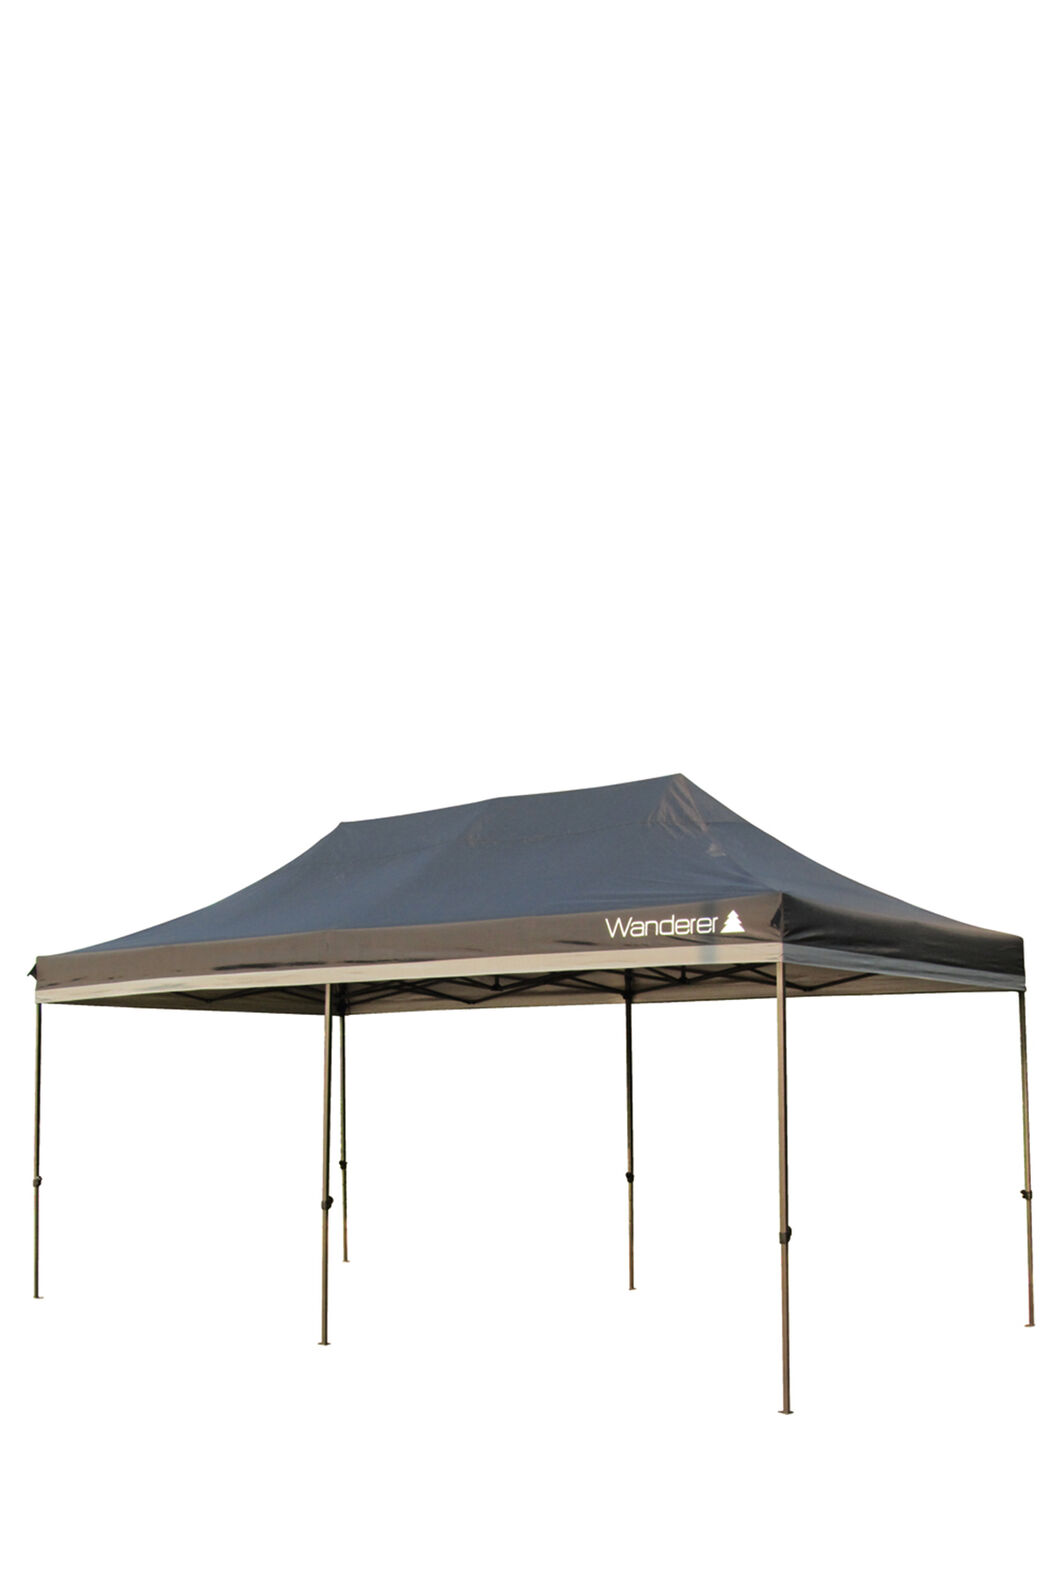 Wanderer 6x3m Ultimate Heavy Duty Gazebo Replacement Canopy, None, hi-res